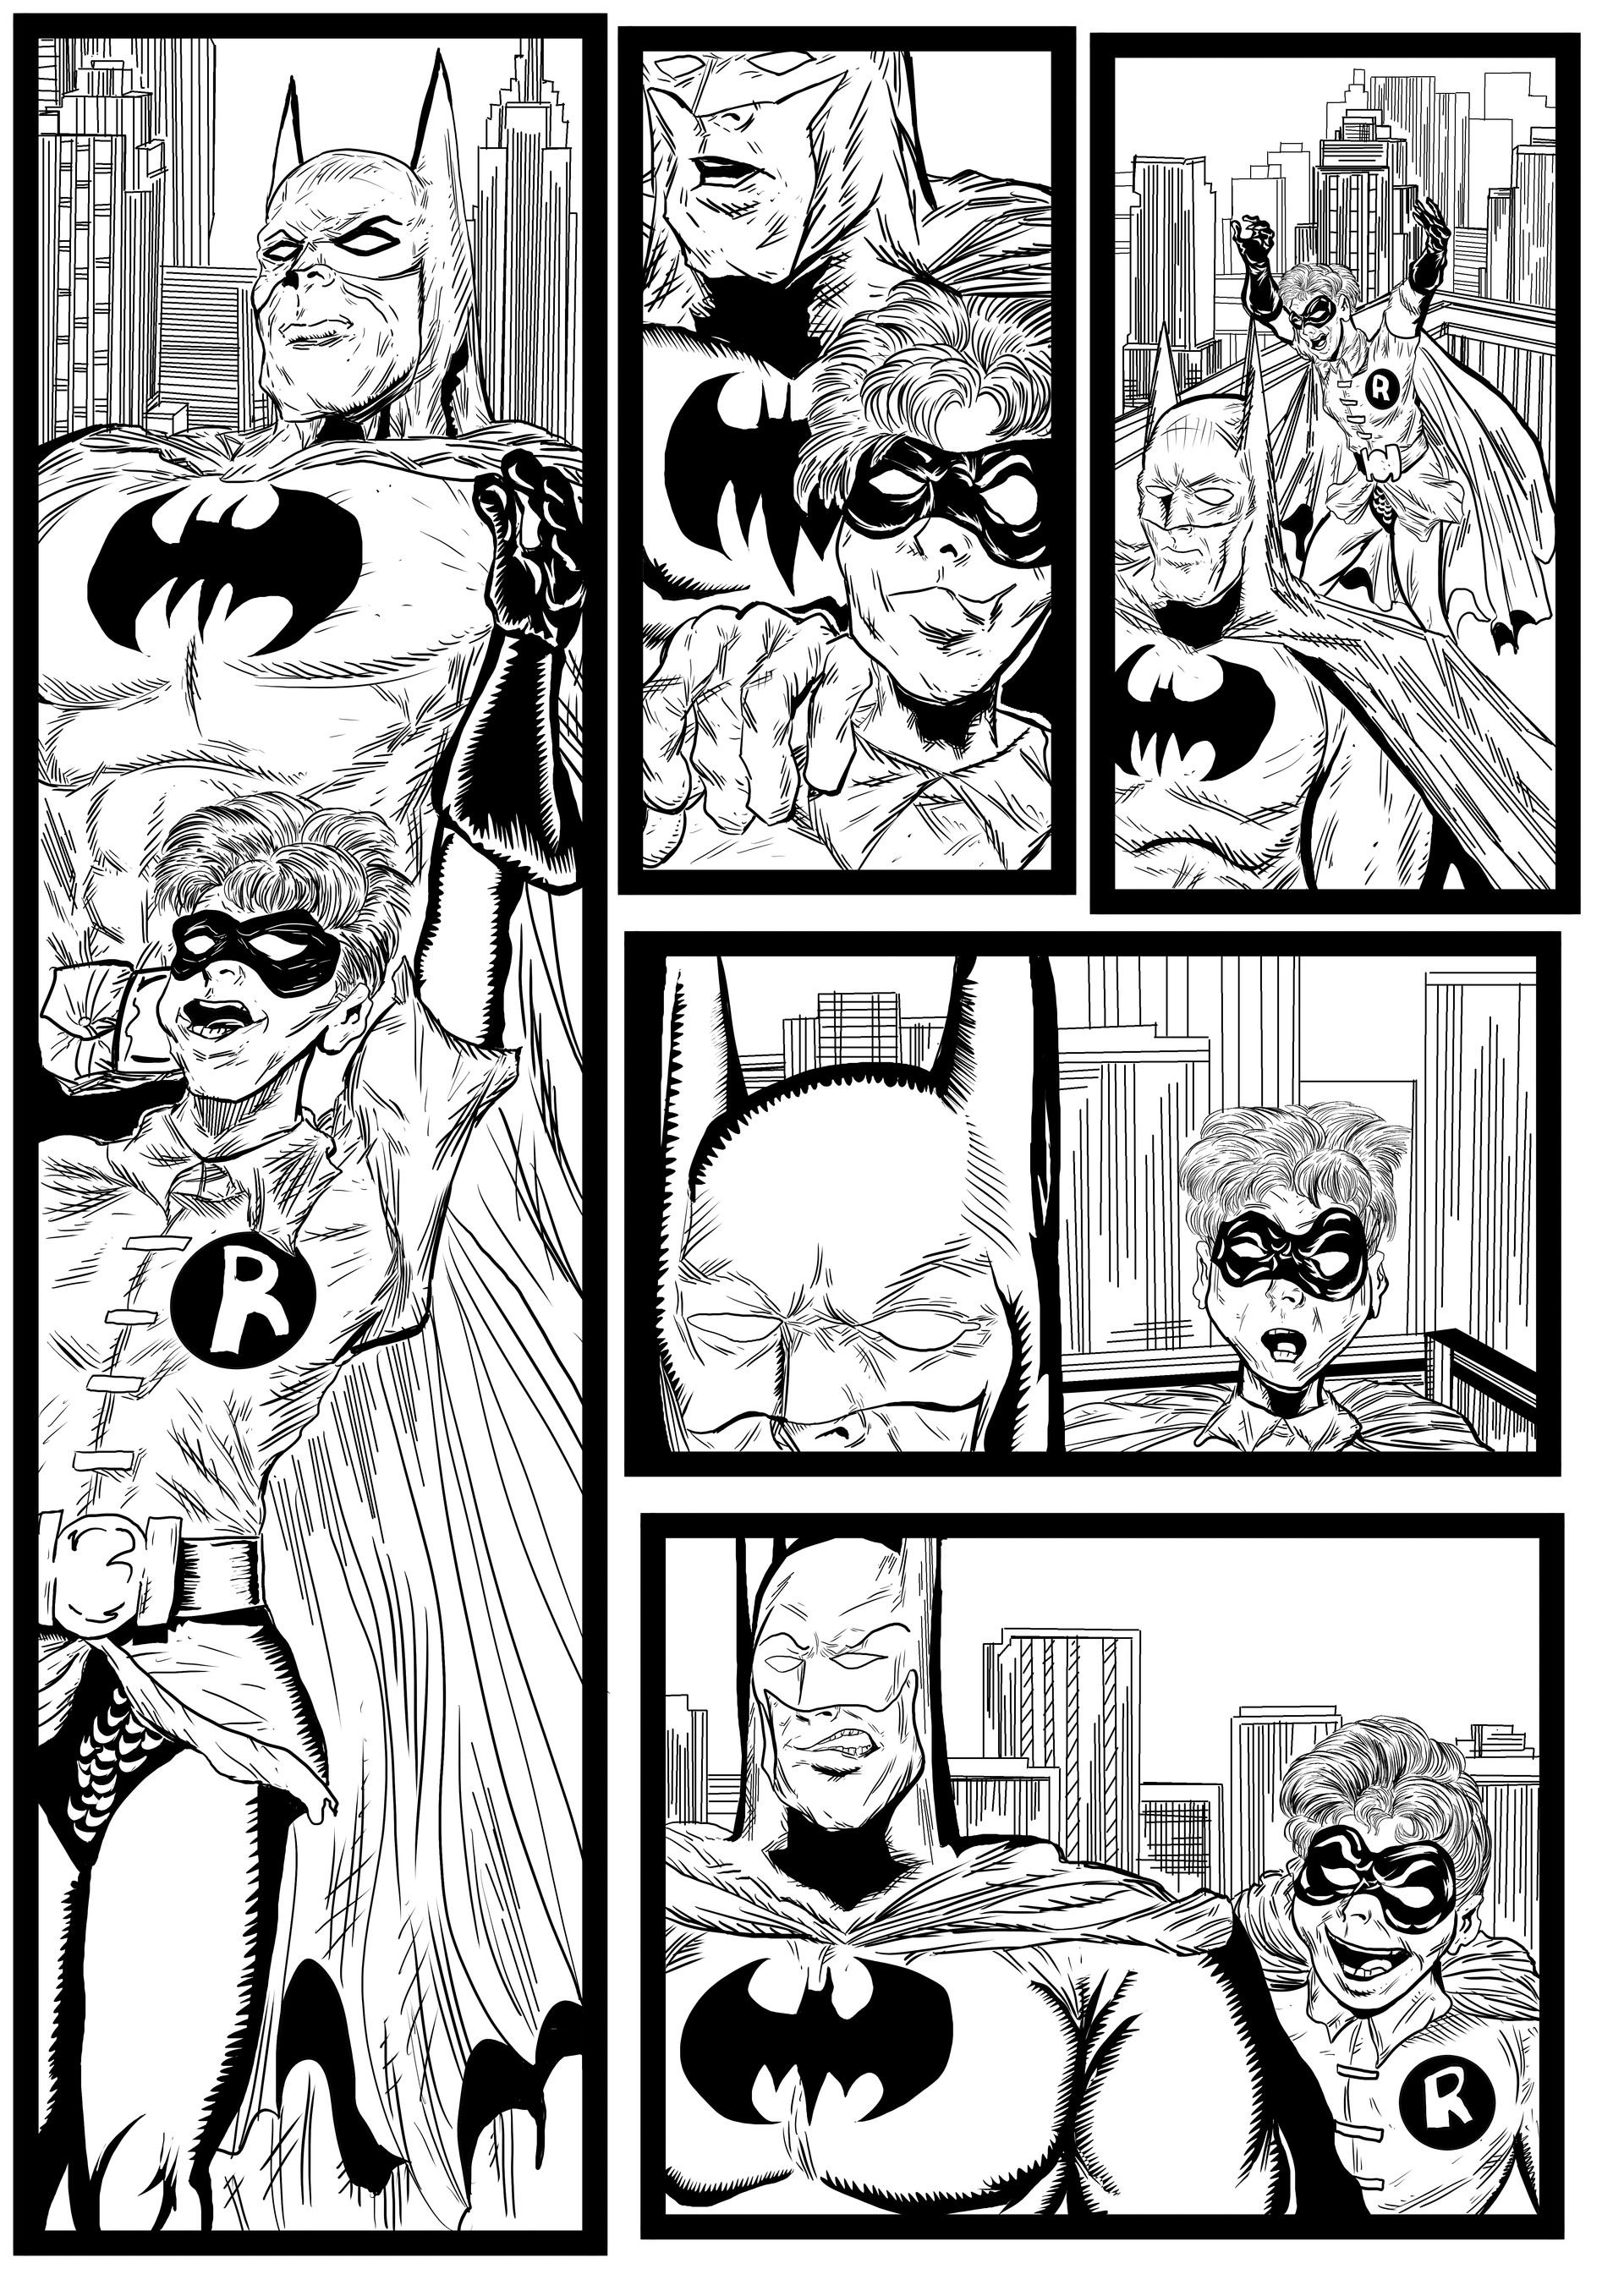 Batman and Robin sequential artwork page 2-2017 by Brian Robinson